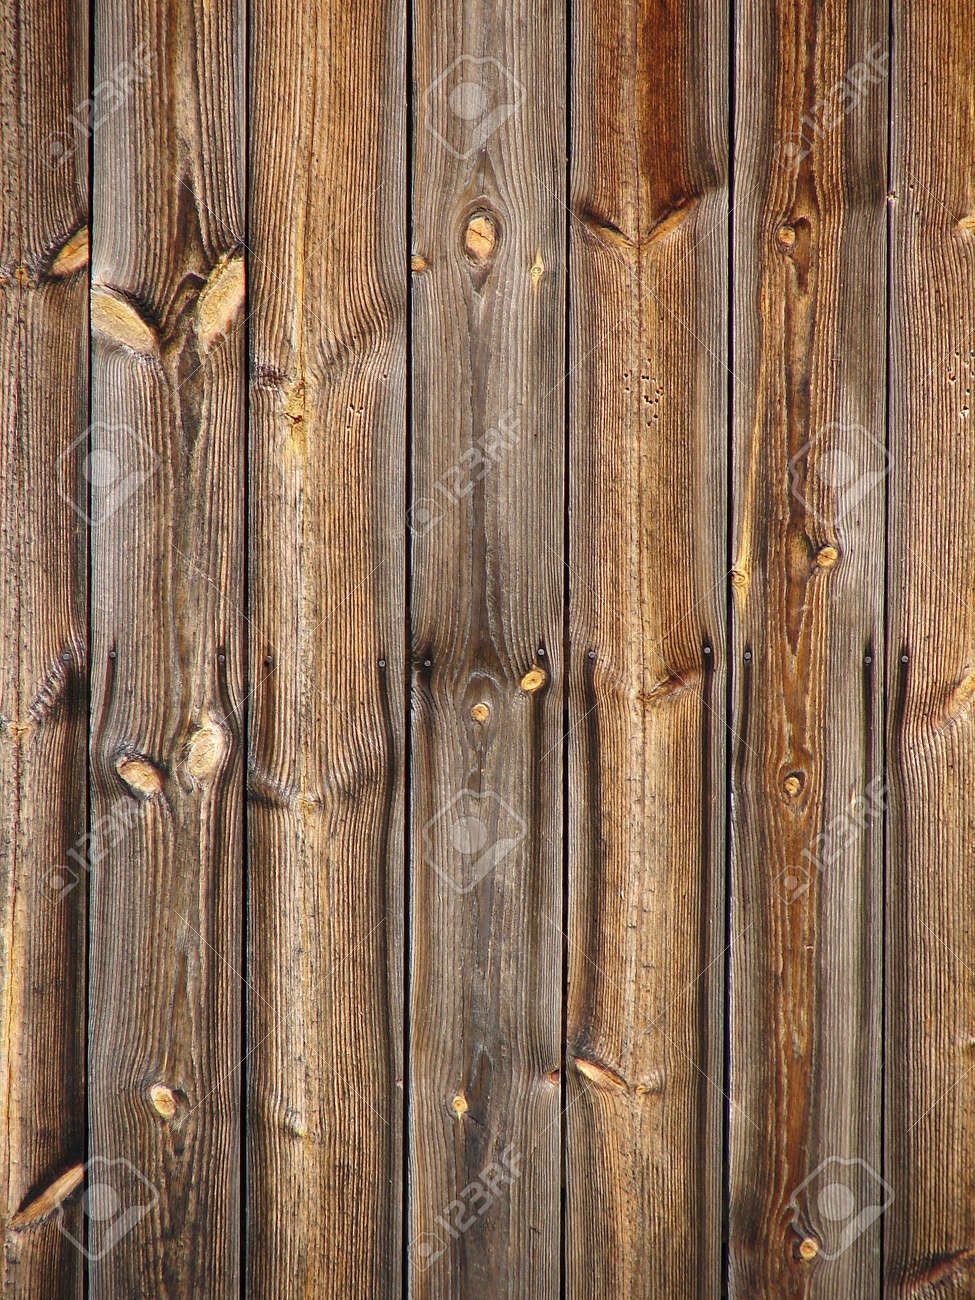 Old wooden boards as background - Natural Brown Old Wooden Board Background Vertical Stock Photo 3465900